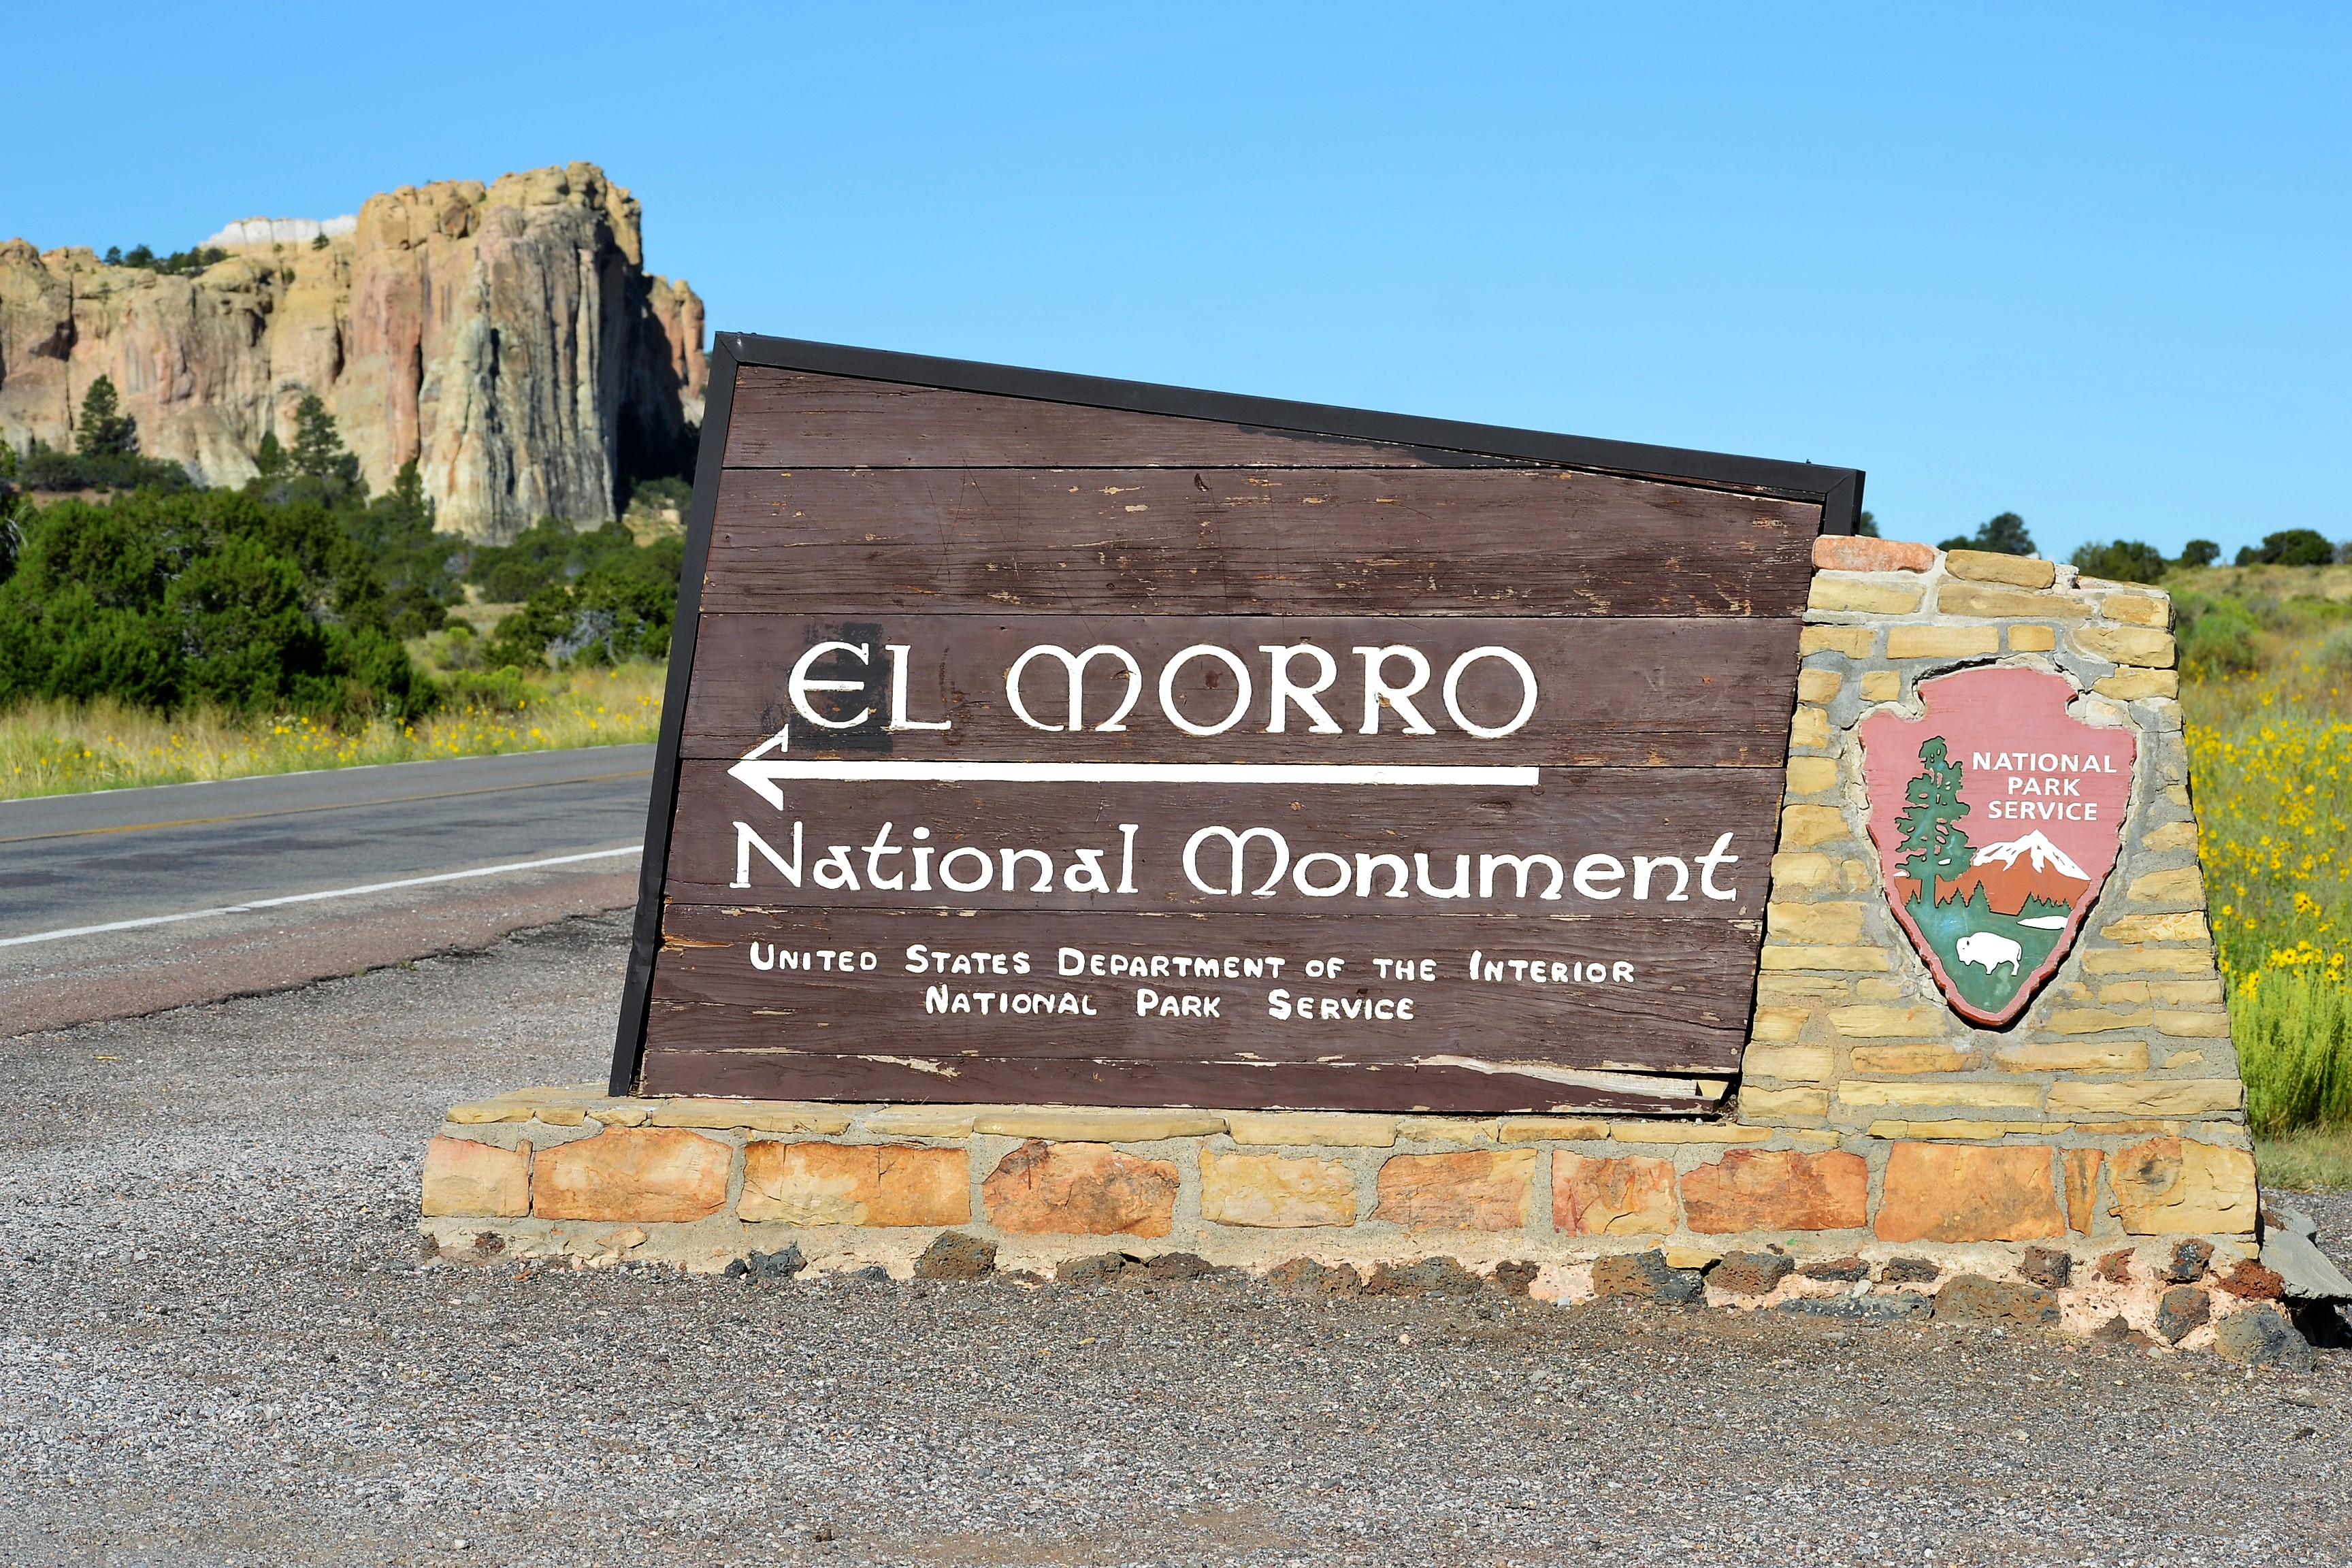 Entrance Sign With El Morro in the Background